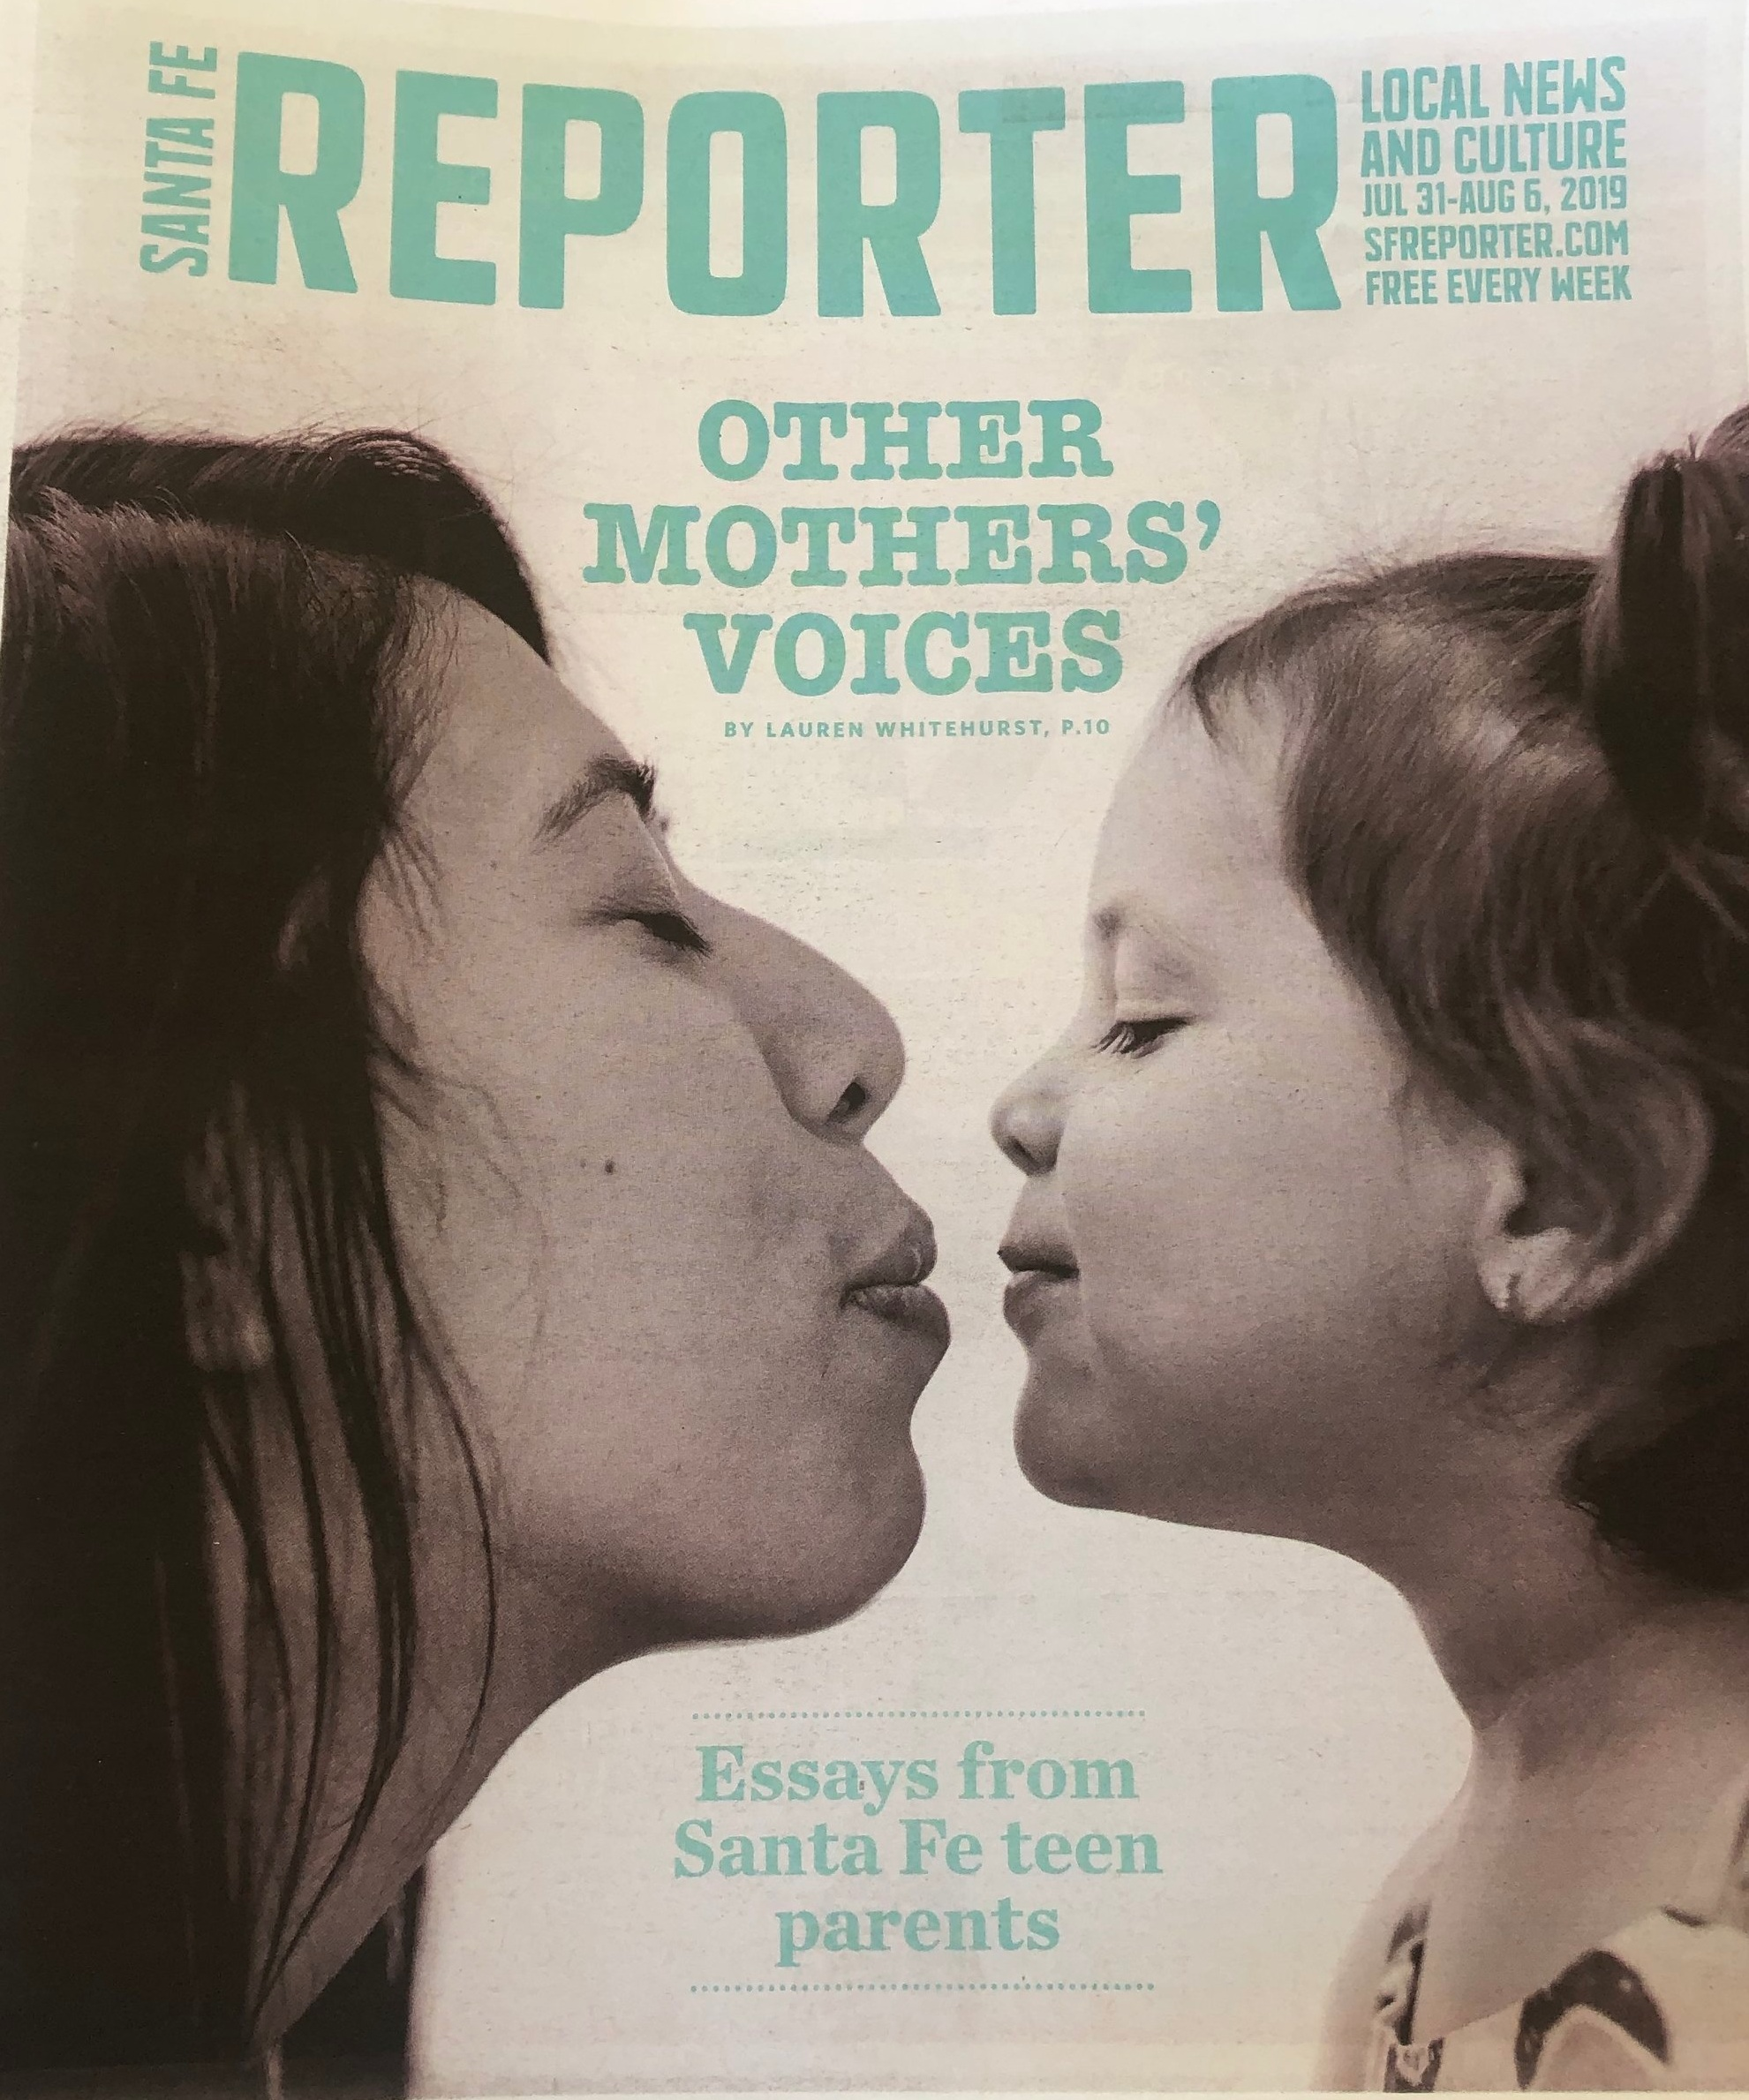 On newsstands July 31, 2019.   Online here:  https://www.sfreporter.com/news/coverstories/2019/07/31/other-mothers-voices-3/